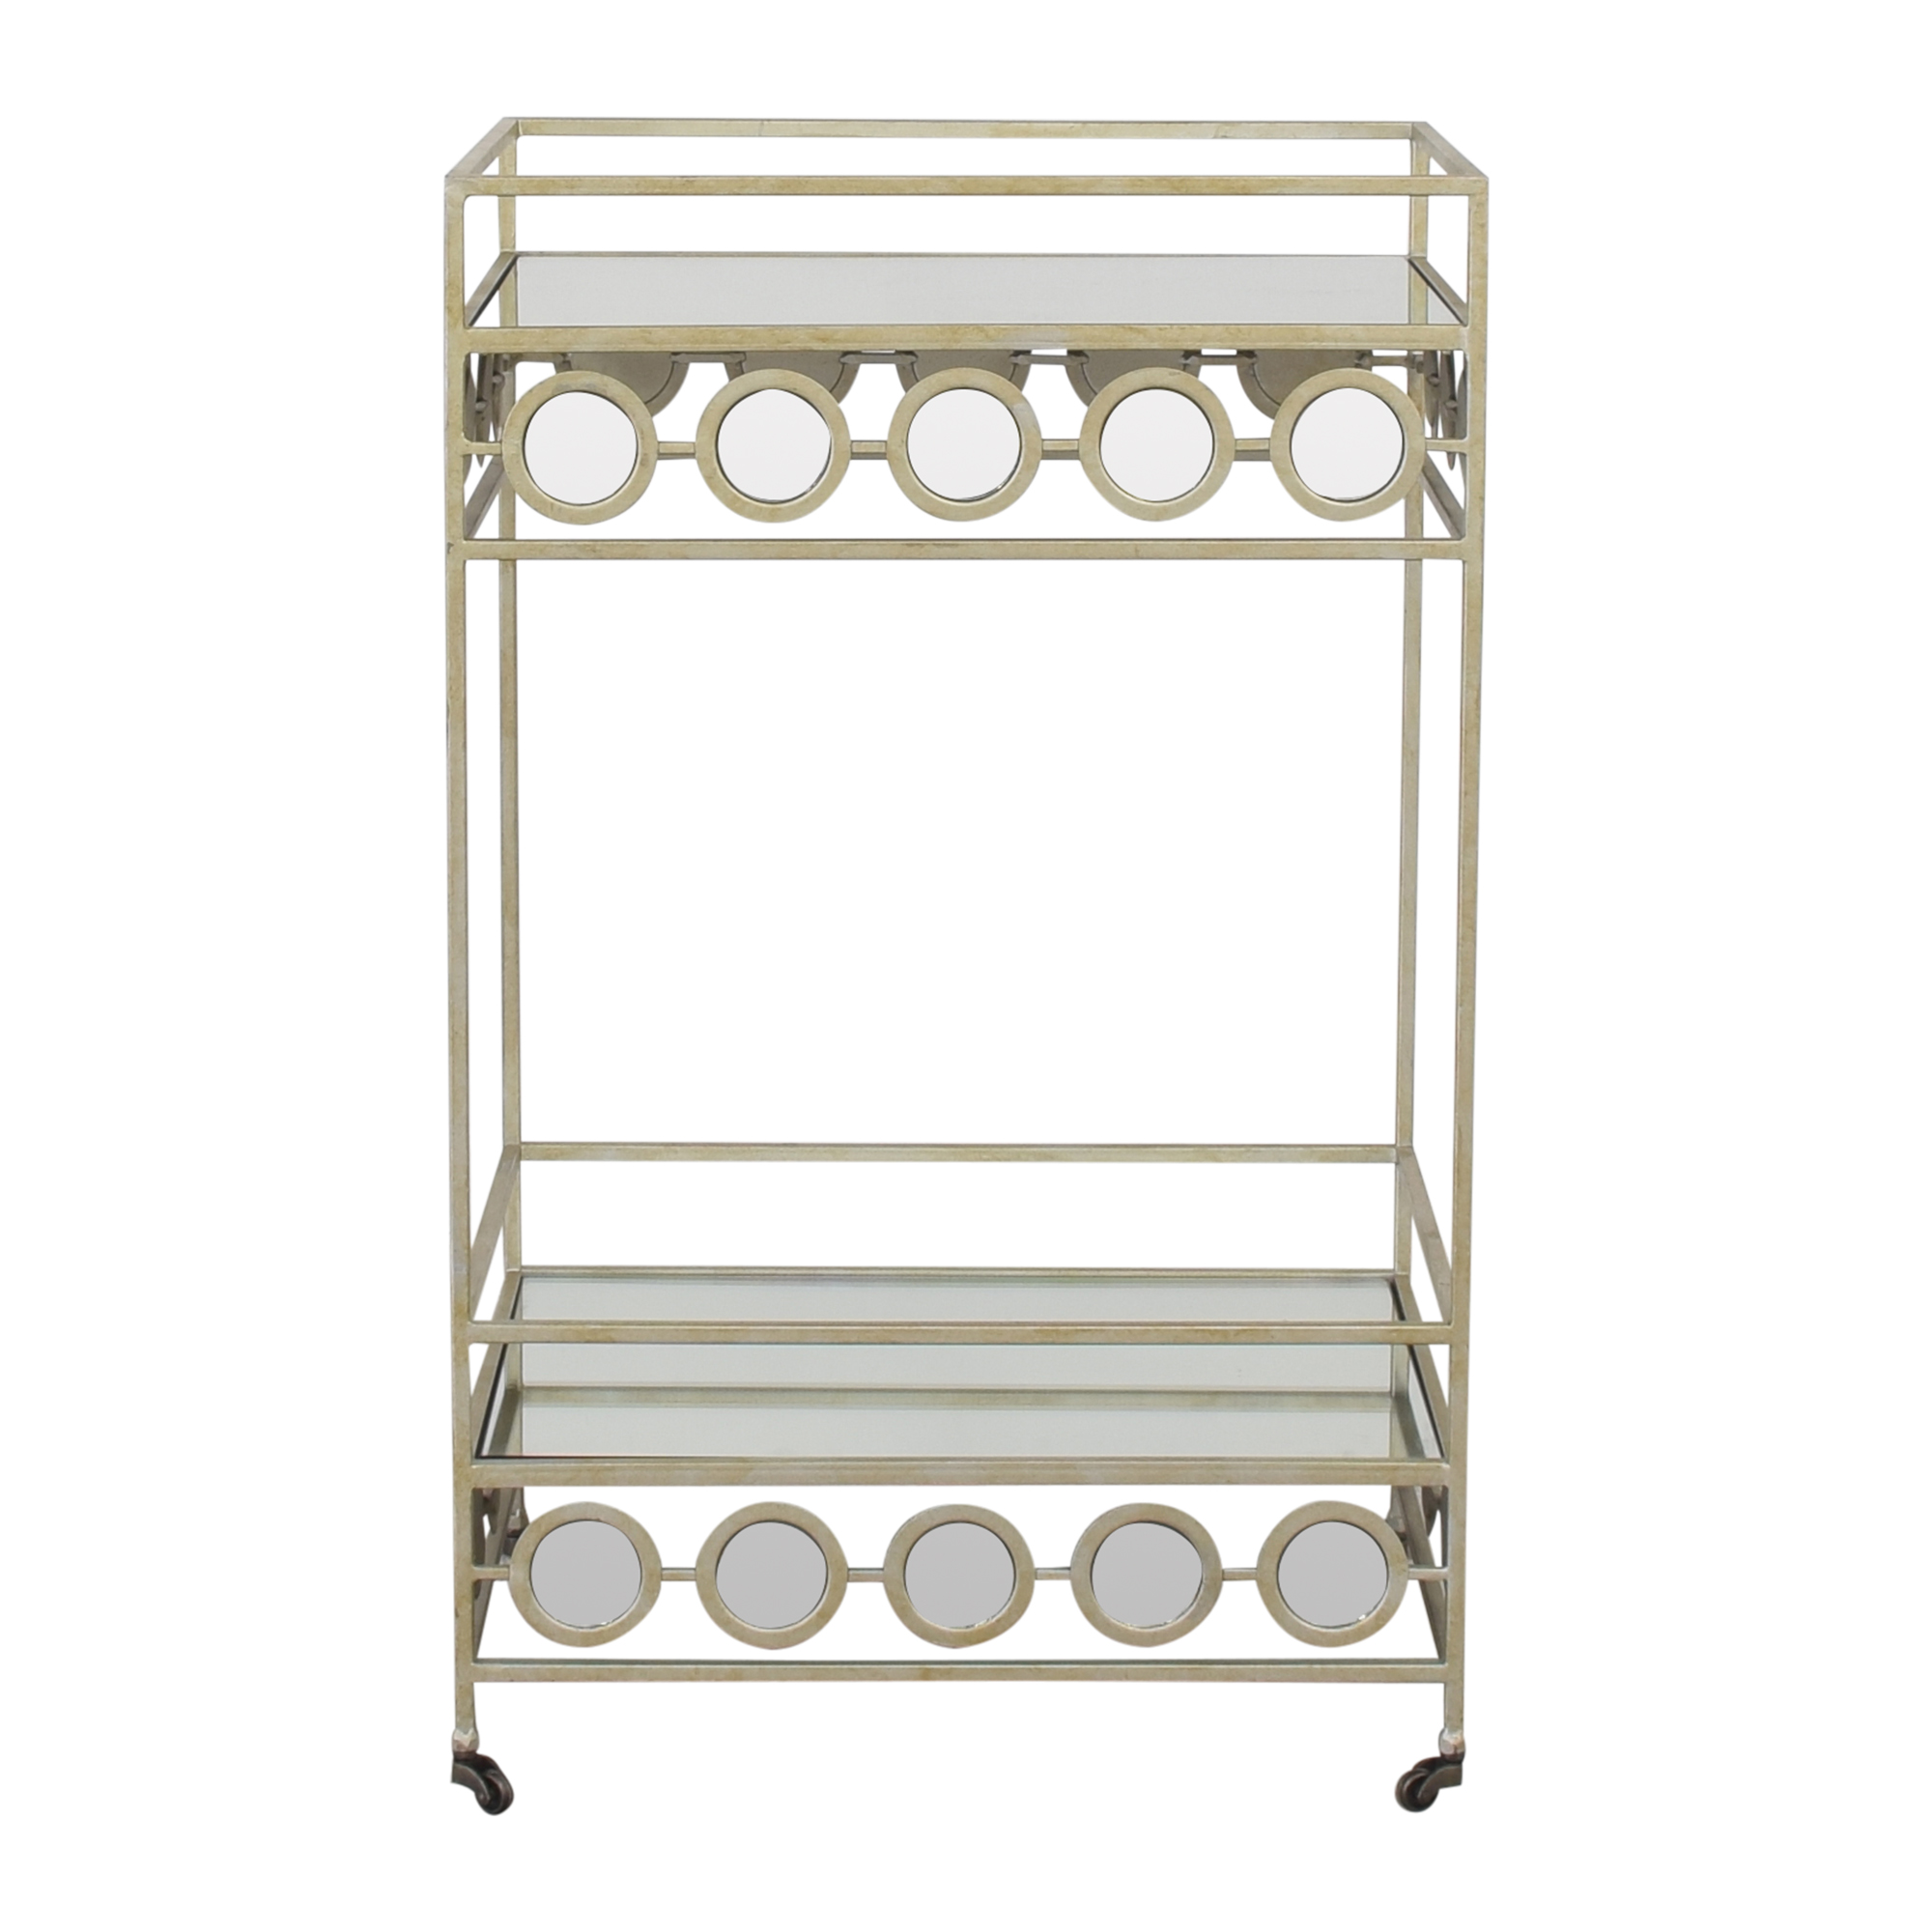 Pier 1 Pier 1 Della Mirrored Bar Cart Tables